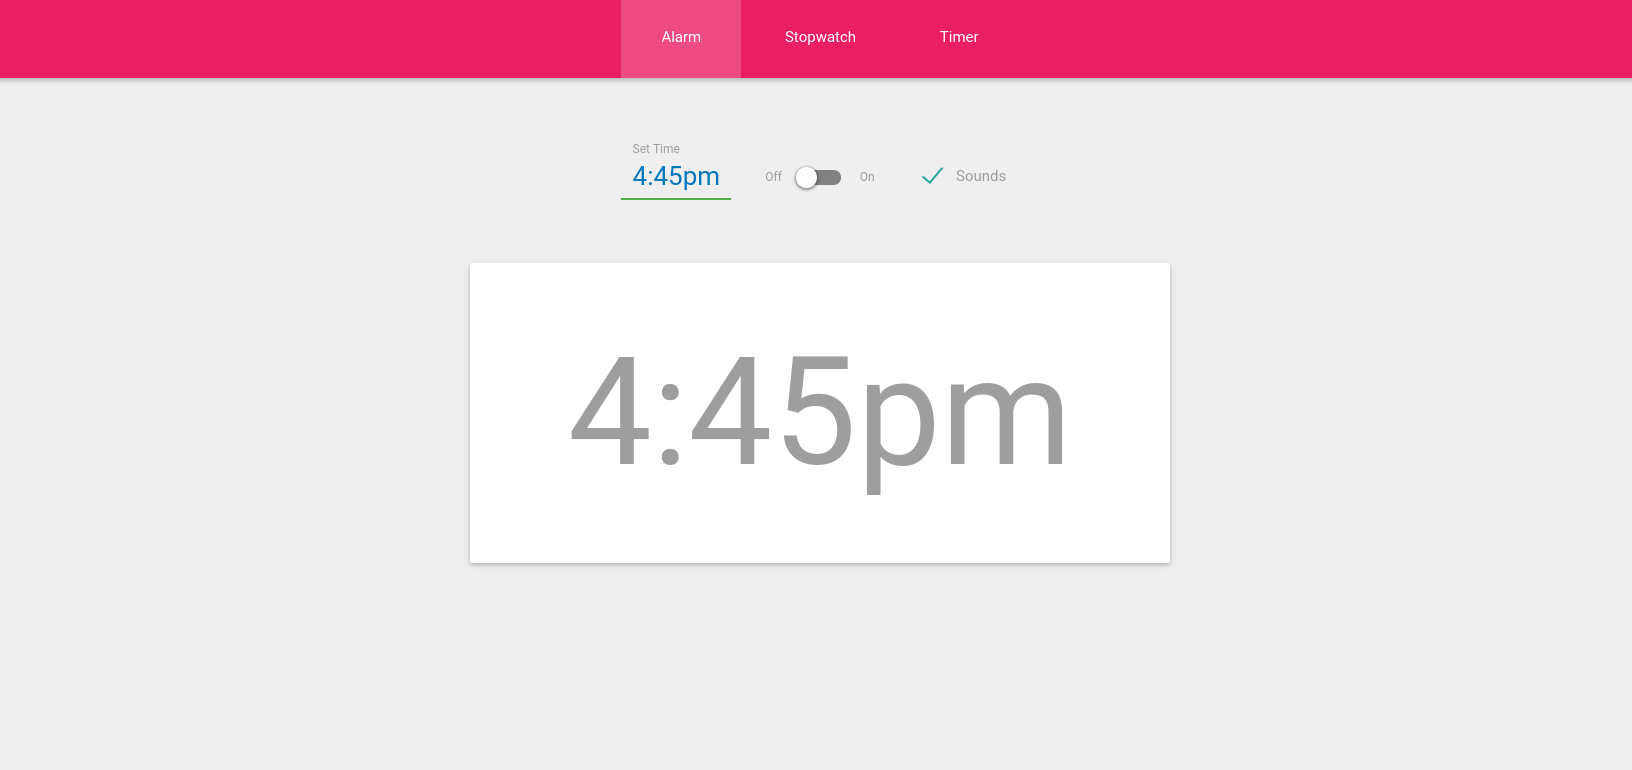 Alarm Timer Experiment Material Design Stopwatch Alarm And Timer Tutorialzine